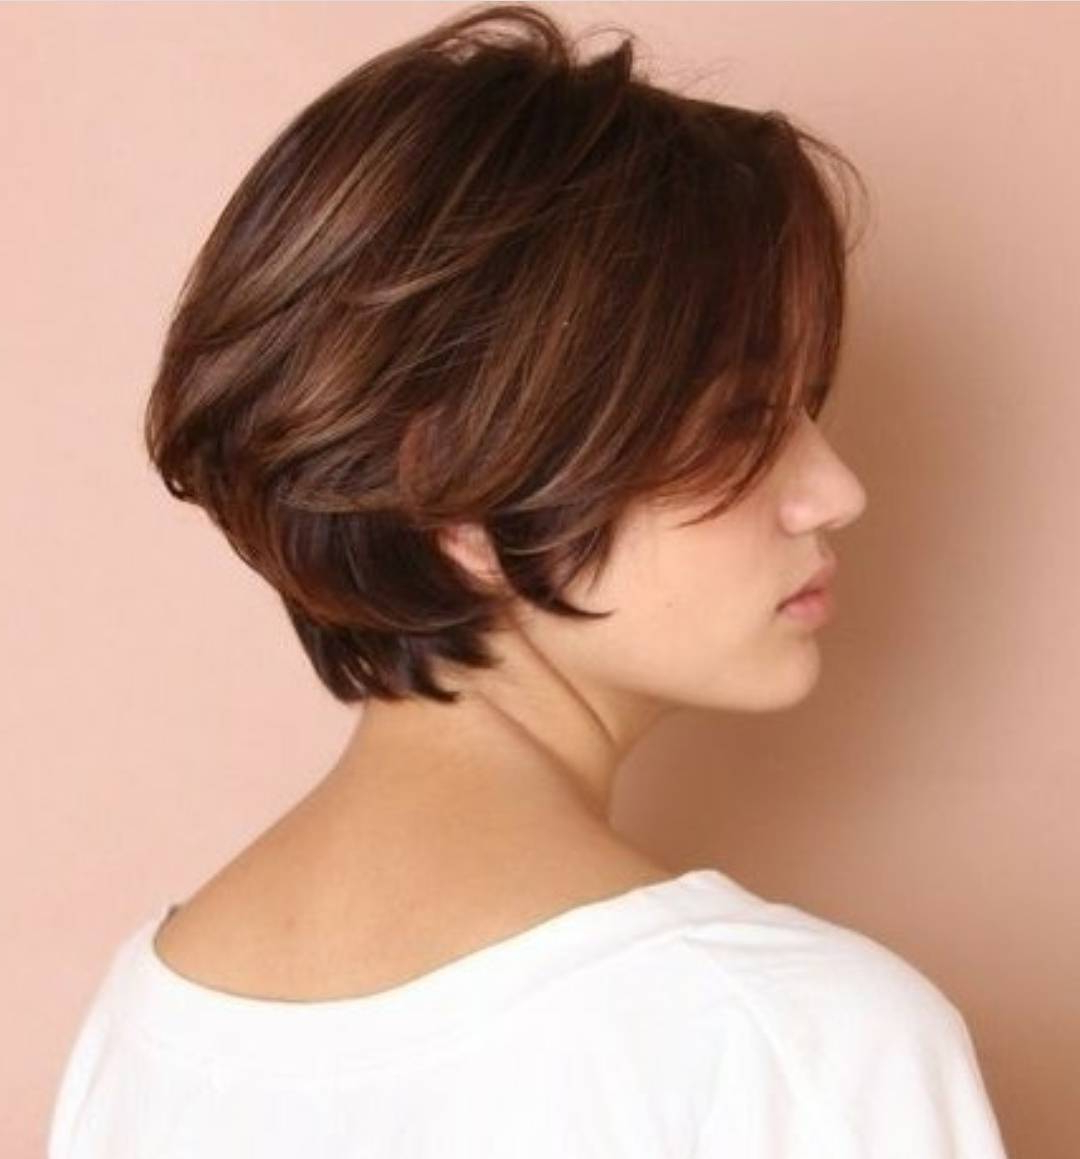 10 Chic Short Bob Haircuts That Balance Your Face Shape! With Chic Short Bob Haircuts With Bangs (View 4 of 20)